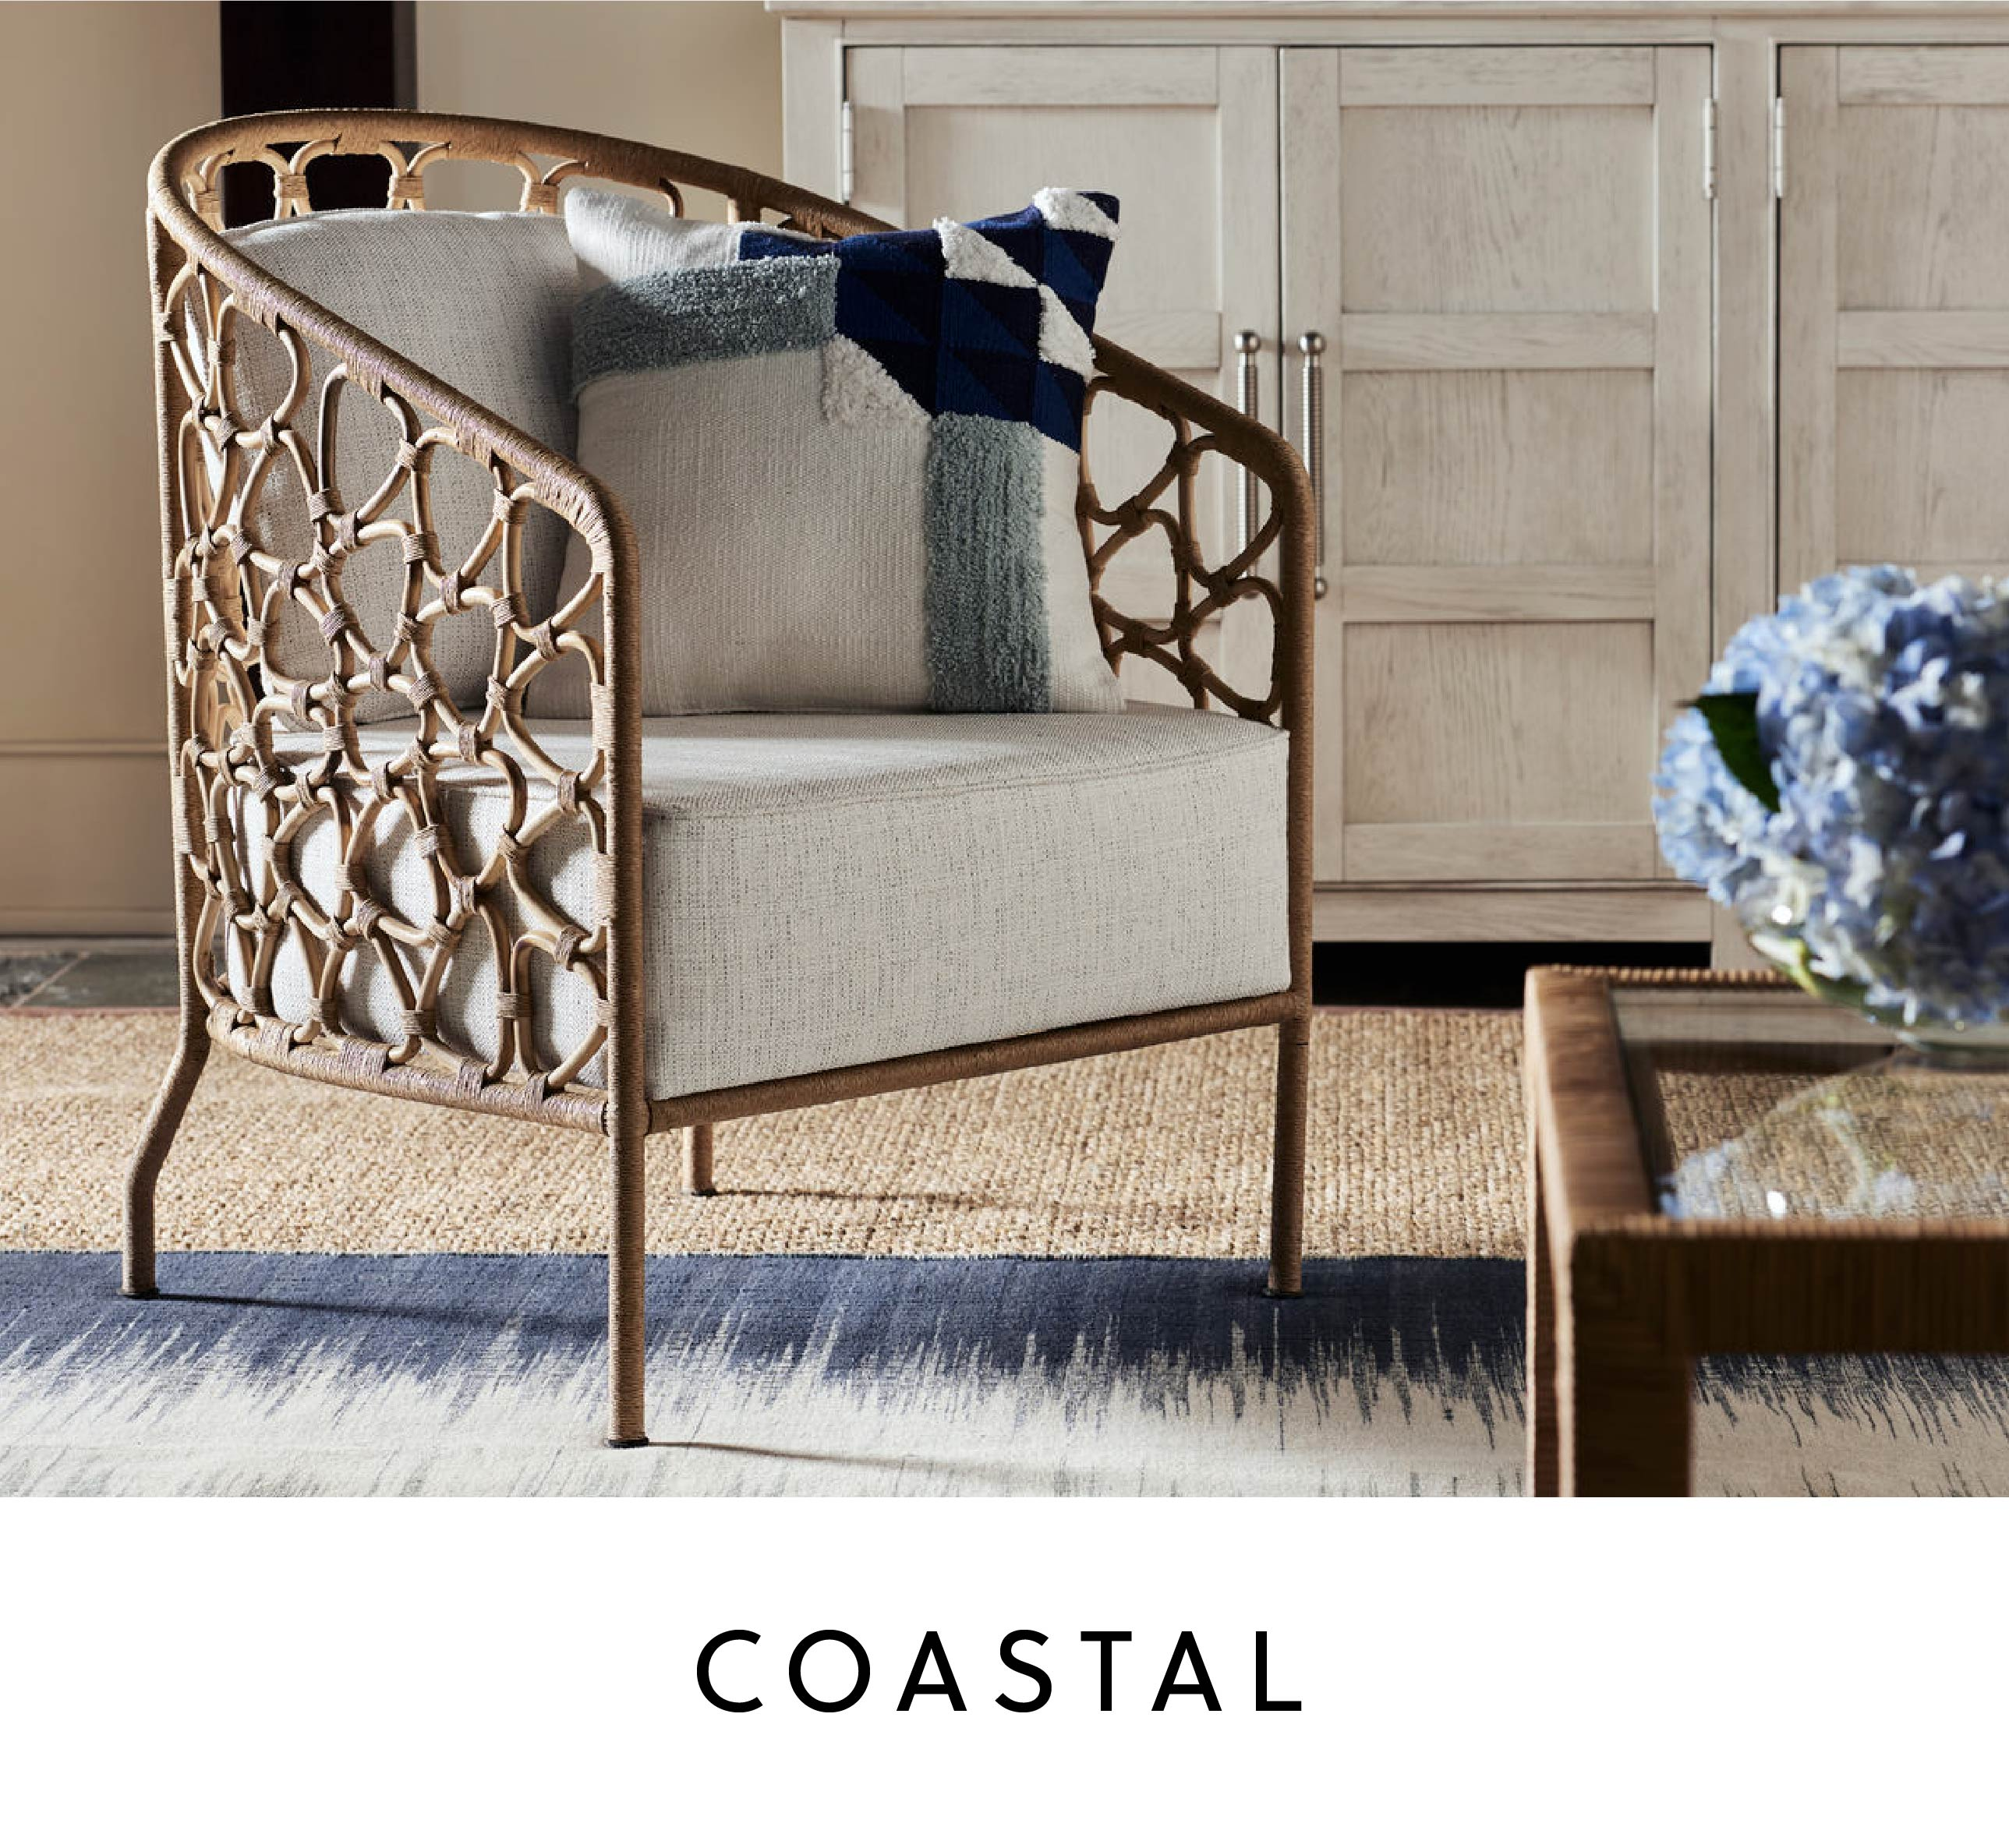 natural-look coastal armchair